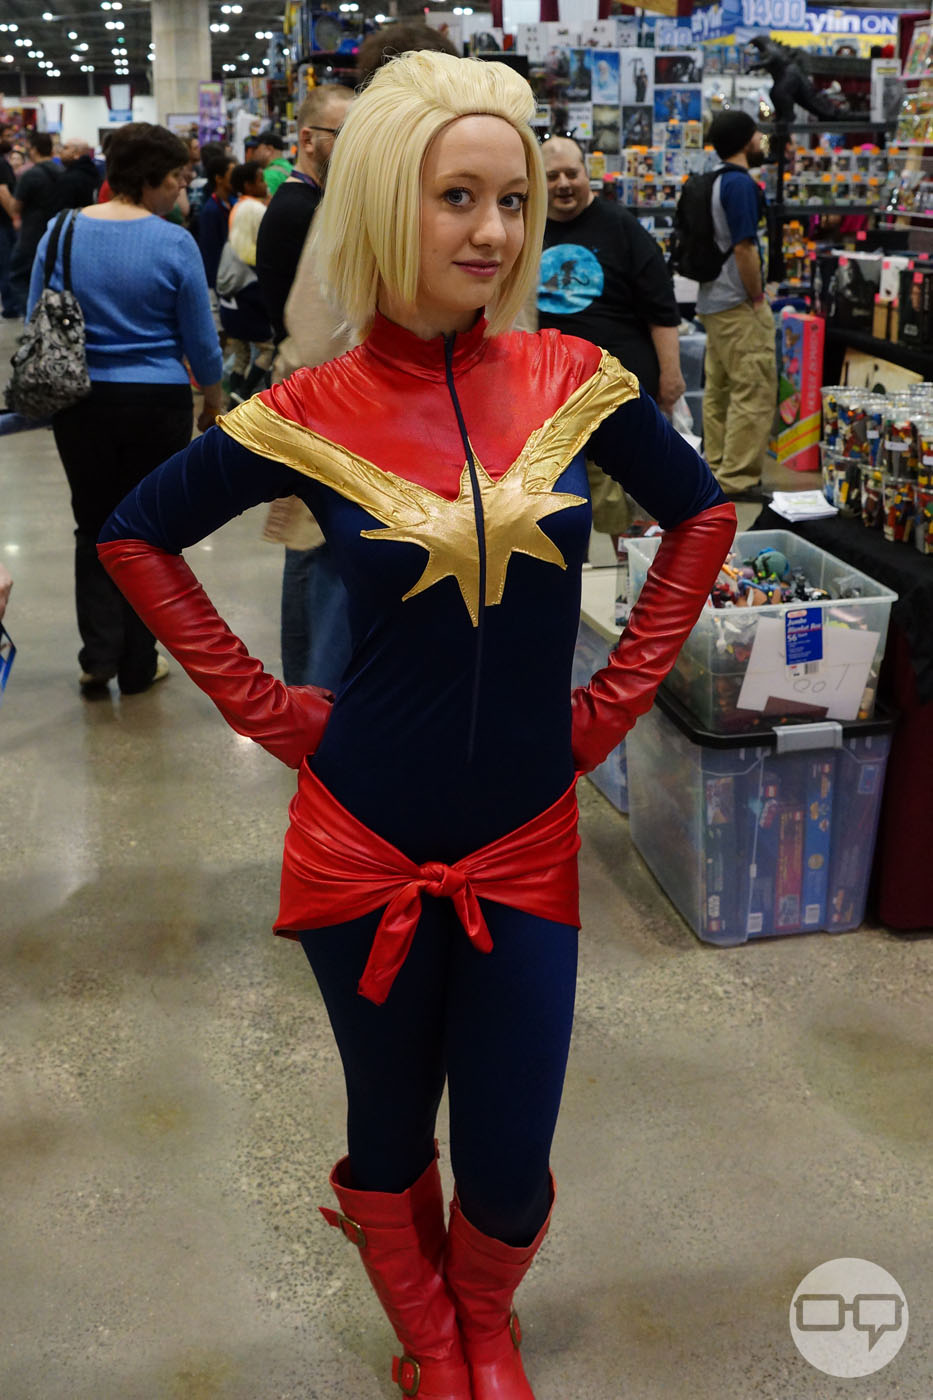 Planet-Comicon-2015-ProNerd-Cosplay-D5-11